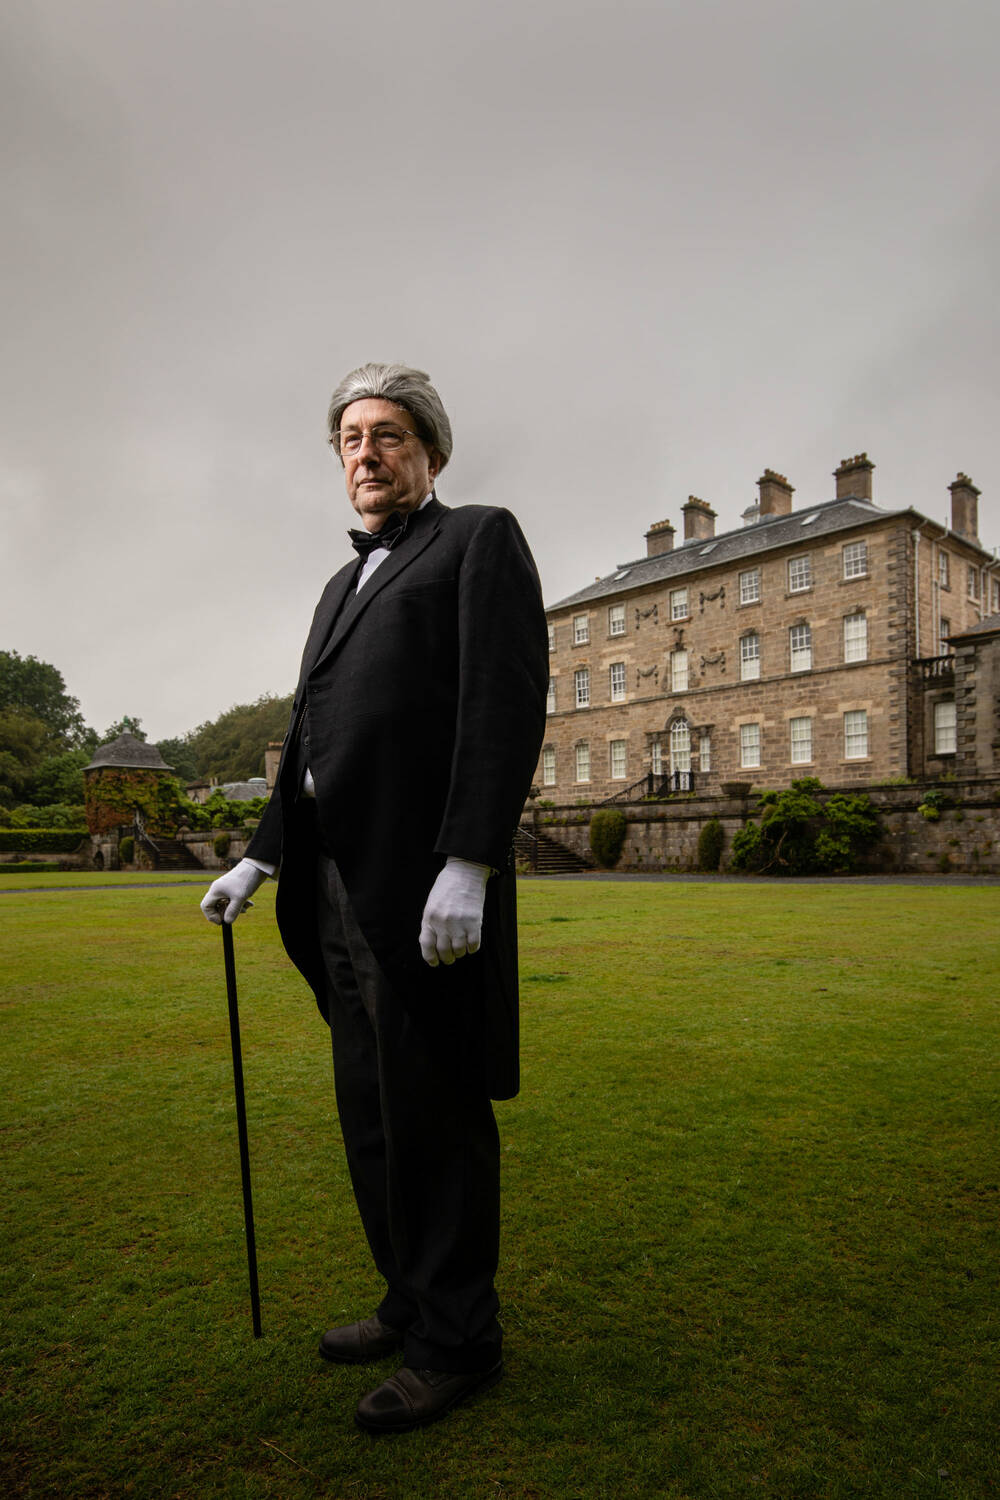 A man dressed as a butler in front of a stately home